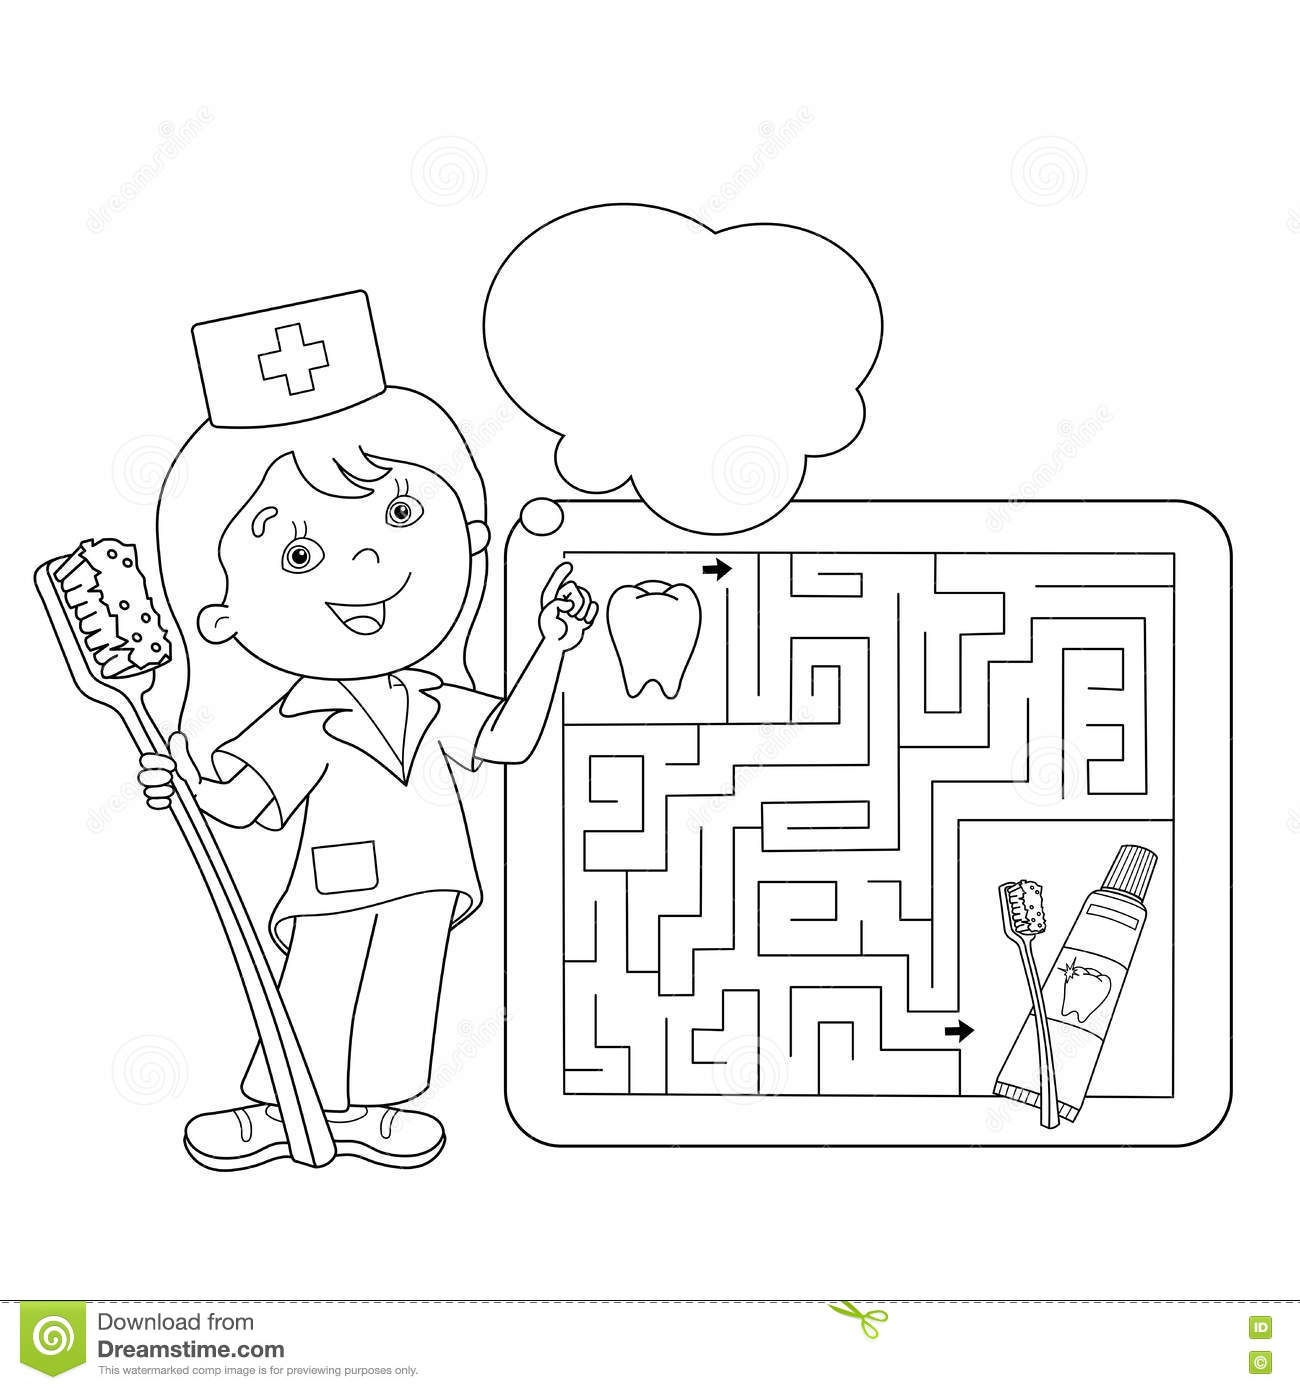 coloring page outline of doctor with toothbrush and toothpaste